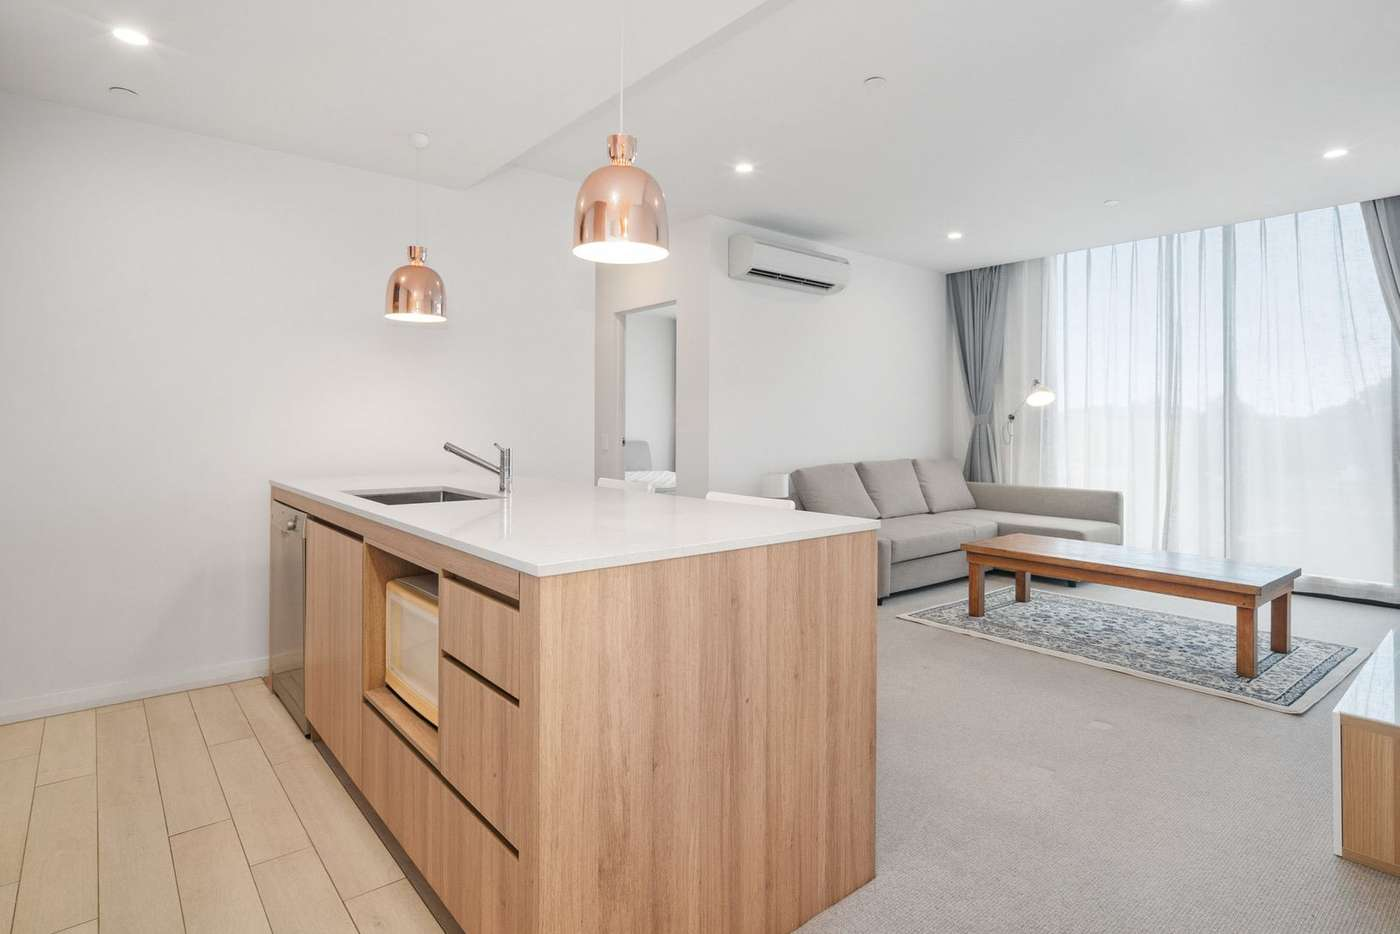 Sixth view of Homely apartment listing, 206/8 Tassels Place, Innaloo WA 6018